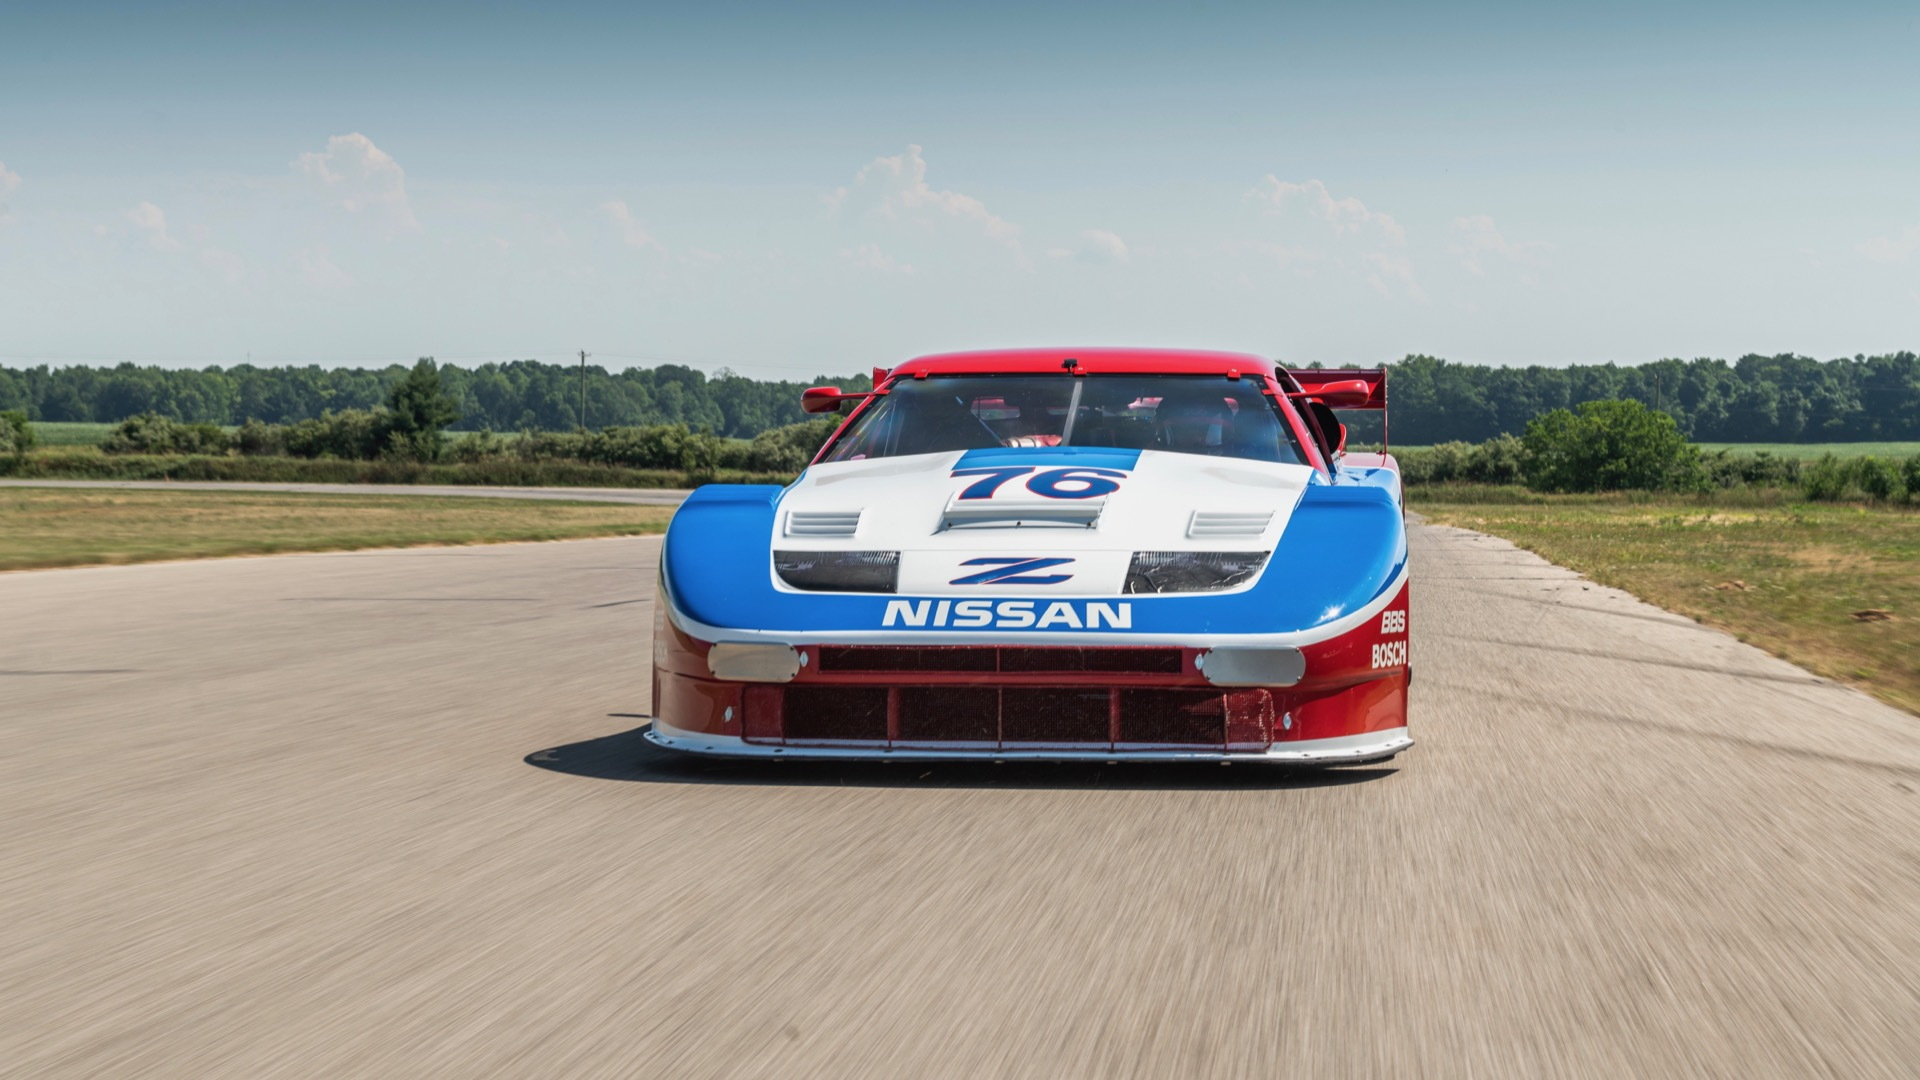 1989 Nissan 300ZX IMSA GTO race car for sale by Stratas Auctions